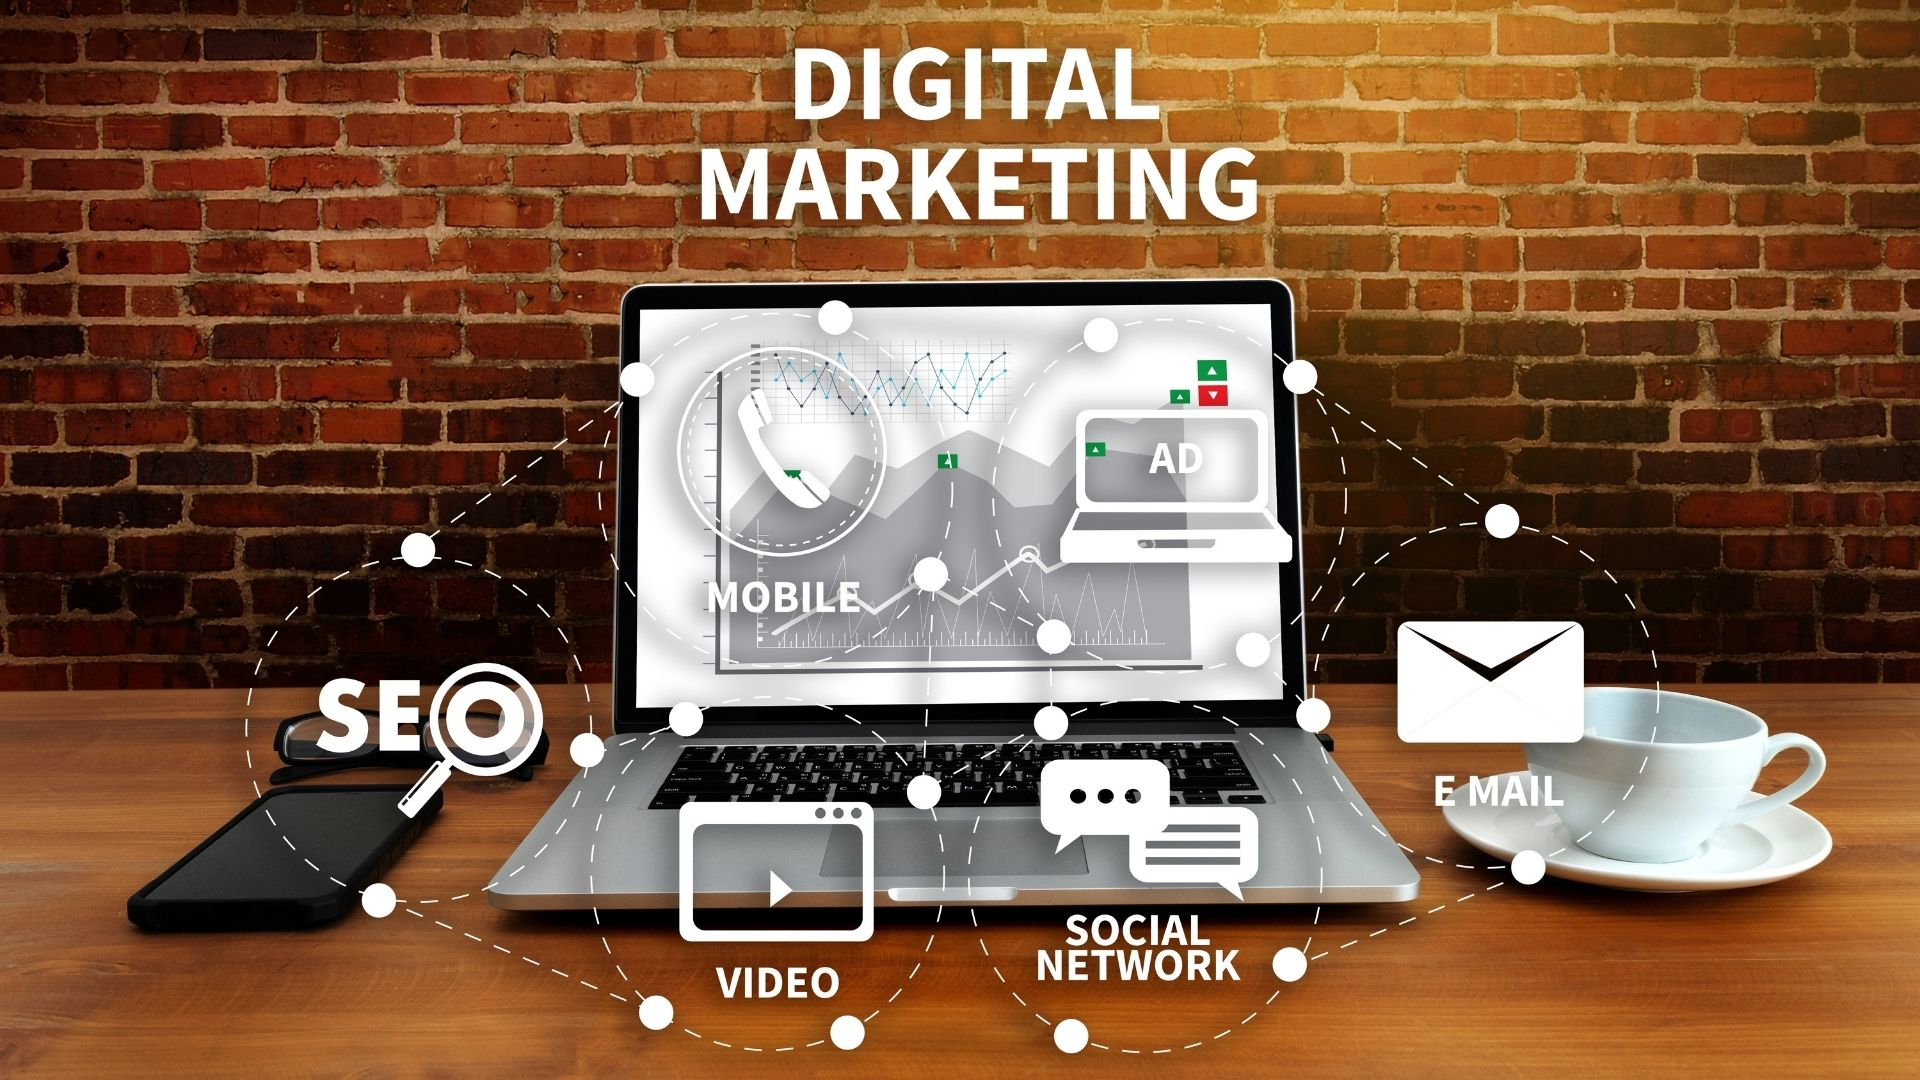 Digital Marketing Trends that will change how brands operate in 2021 14